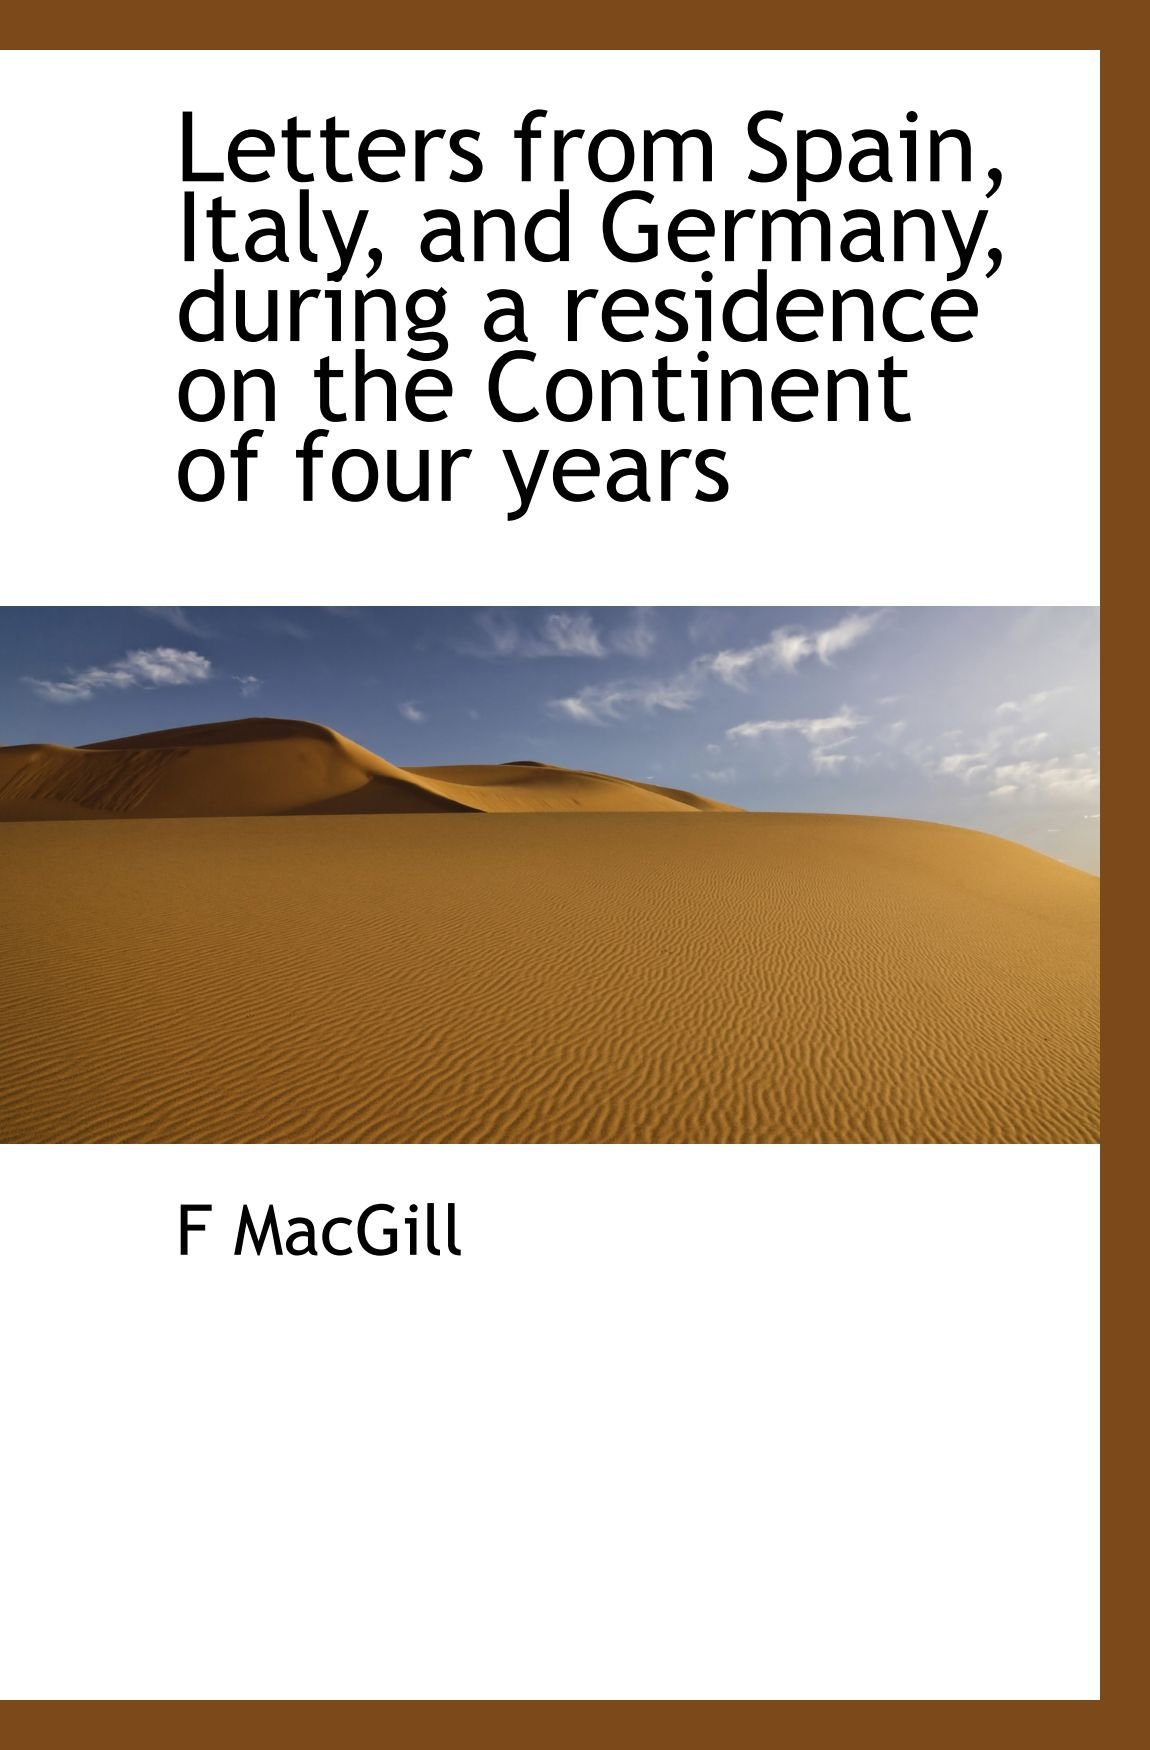 Download Letters from Spain, Italy, and Germany, during a residence on the Continent of four years PDF